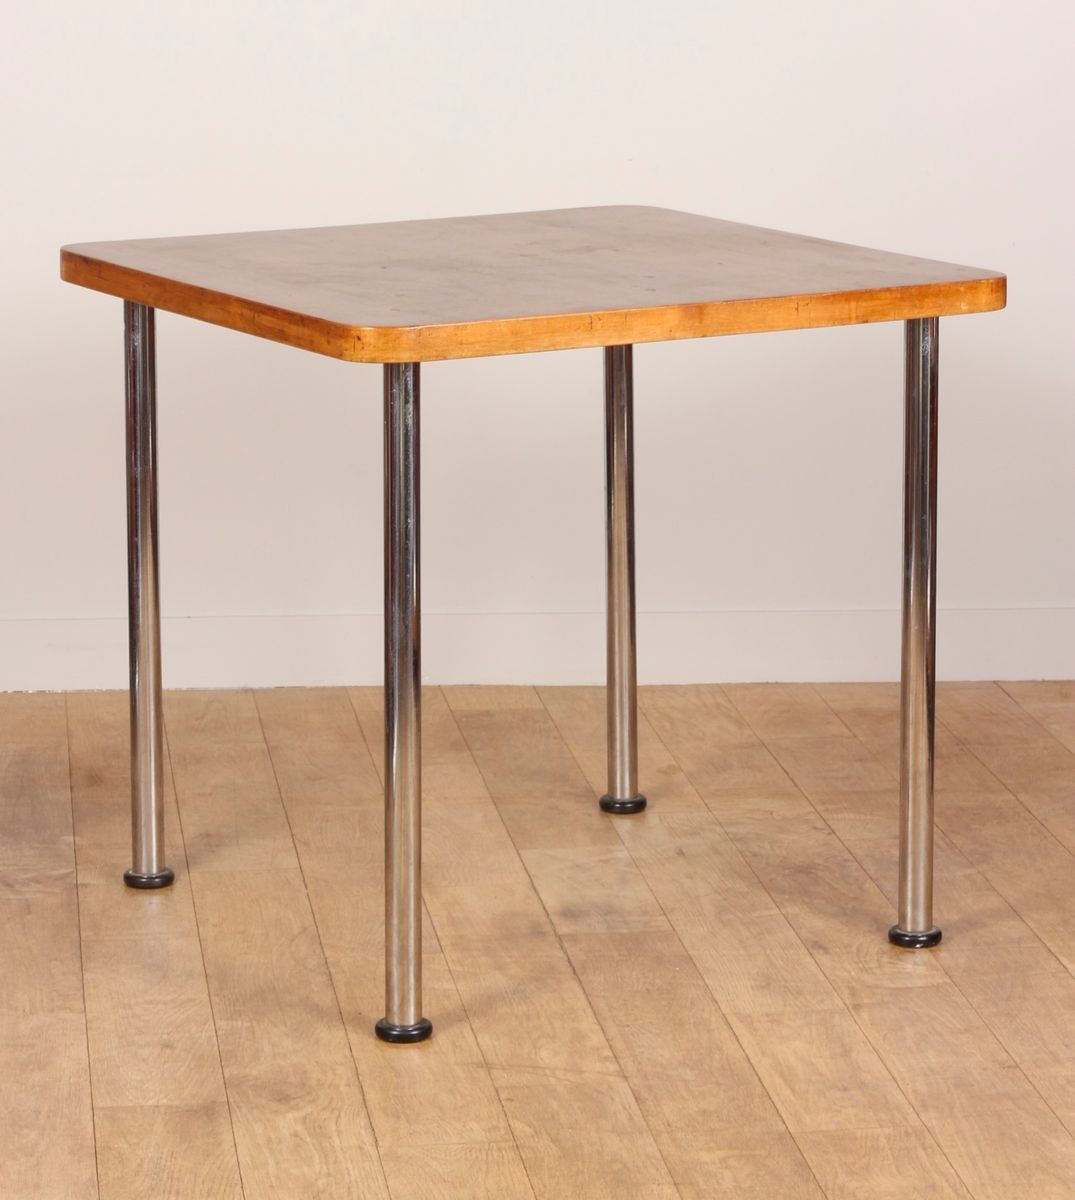 walnut table by marcel breuer for embru 1935 for sale at pamono. Black Bedroom Furniture Sets. Home Design Ideas